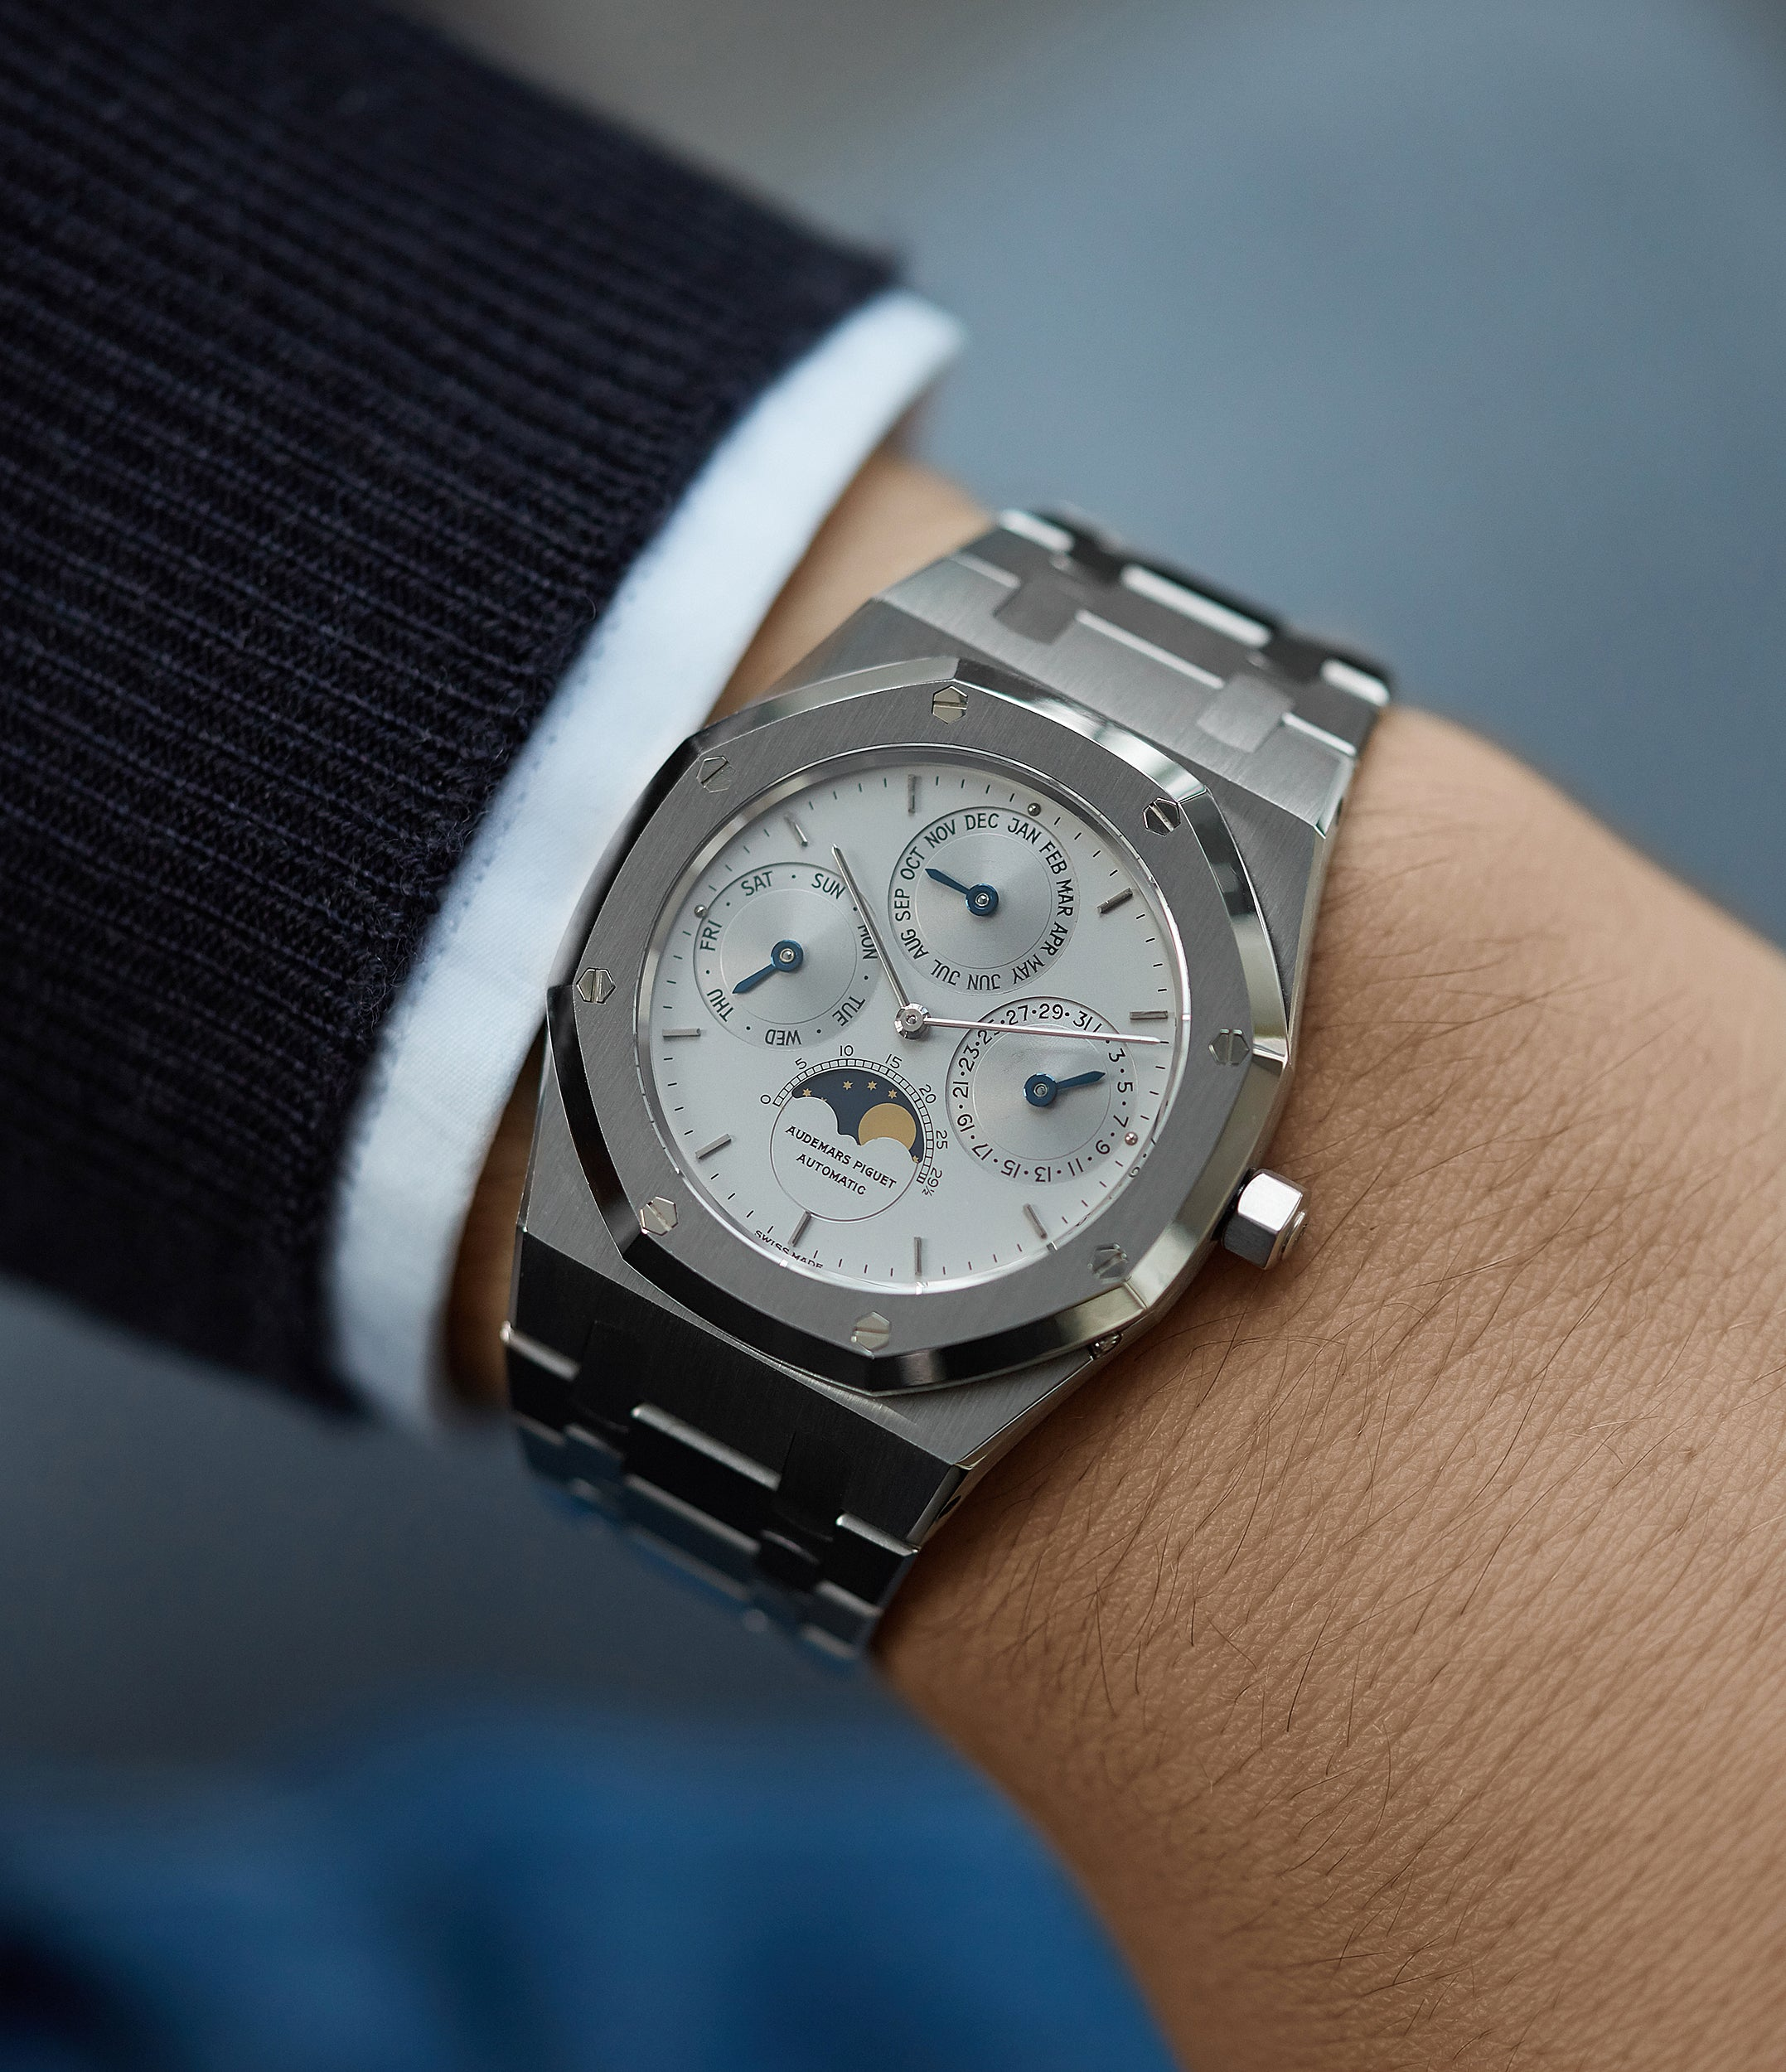 on the wrist Audemars Piguet Royal Oak Perpetual Calendar 25654ST steel vintage watch for sale online at A Collected Man London UK specialist of rare watches